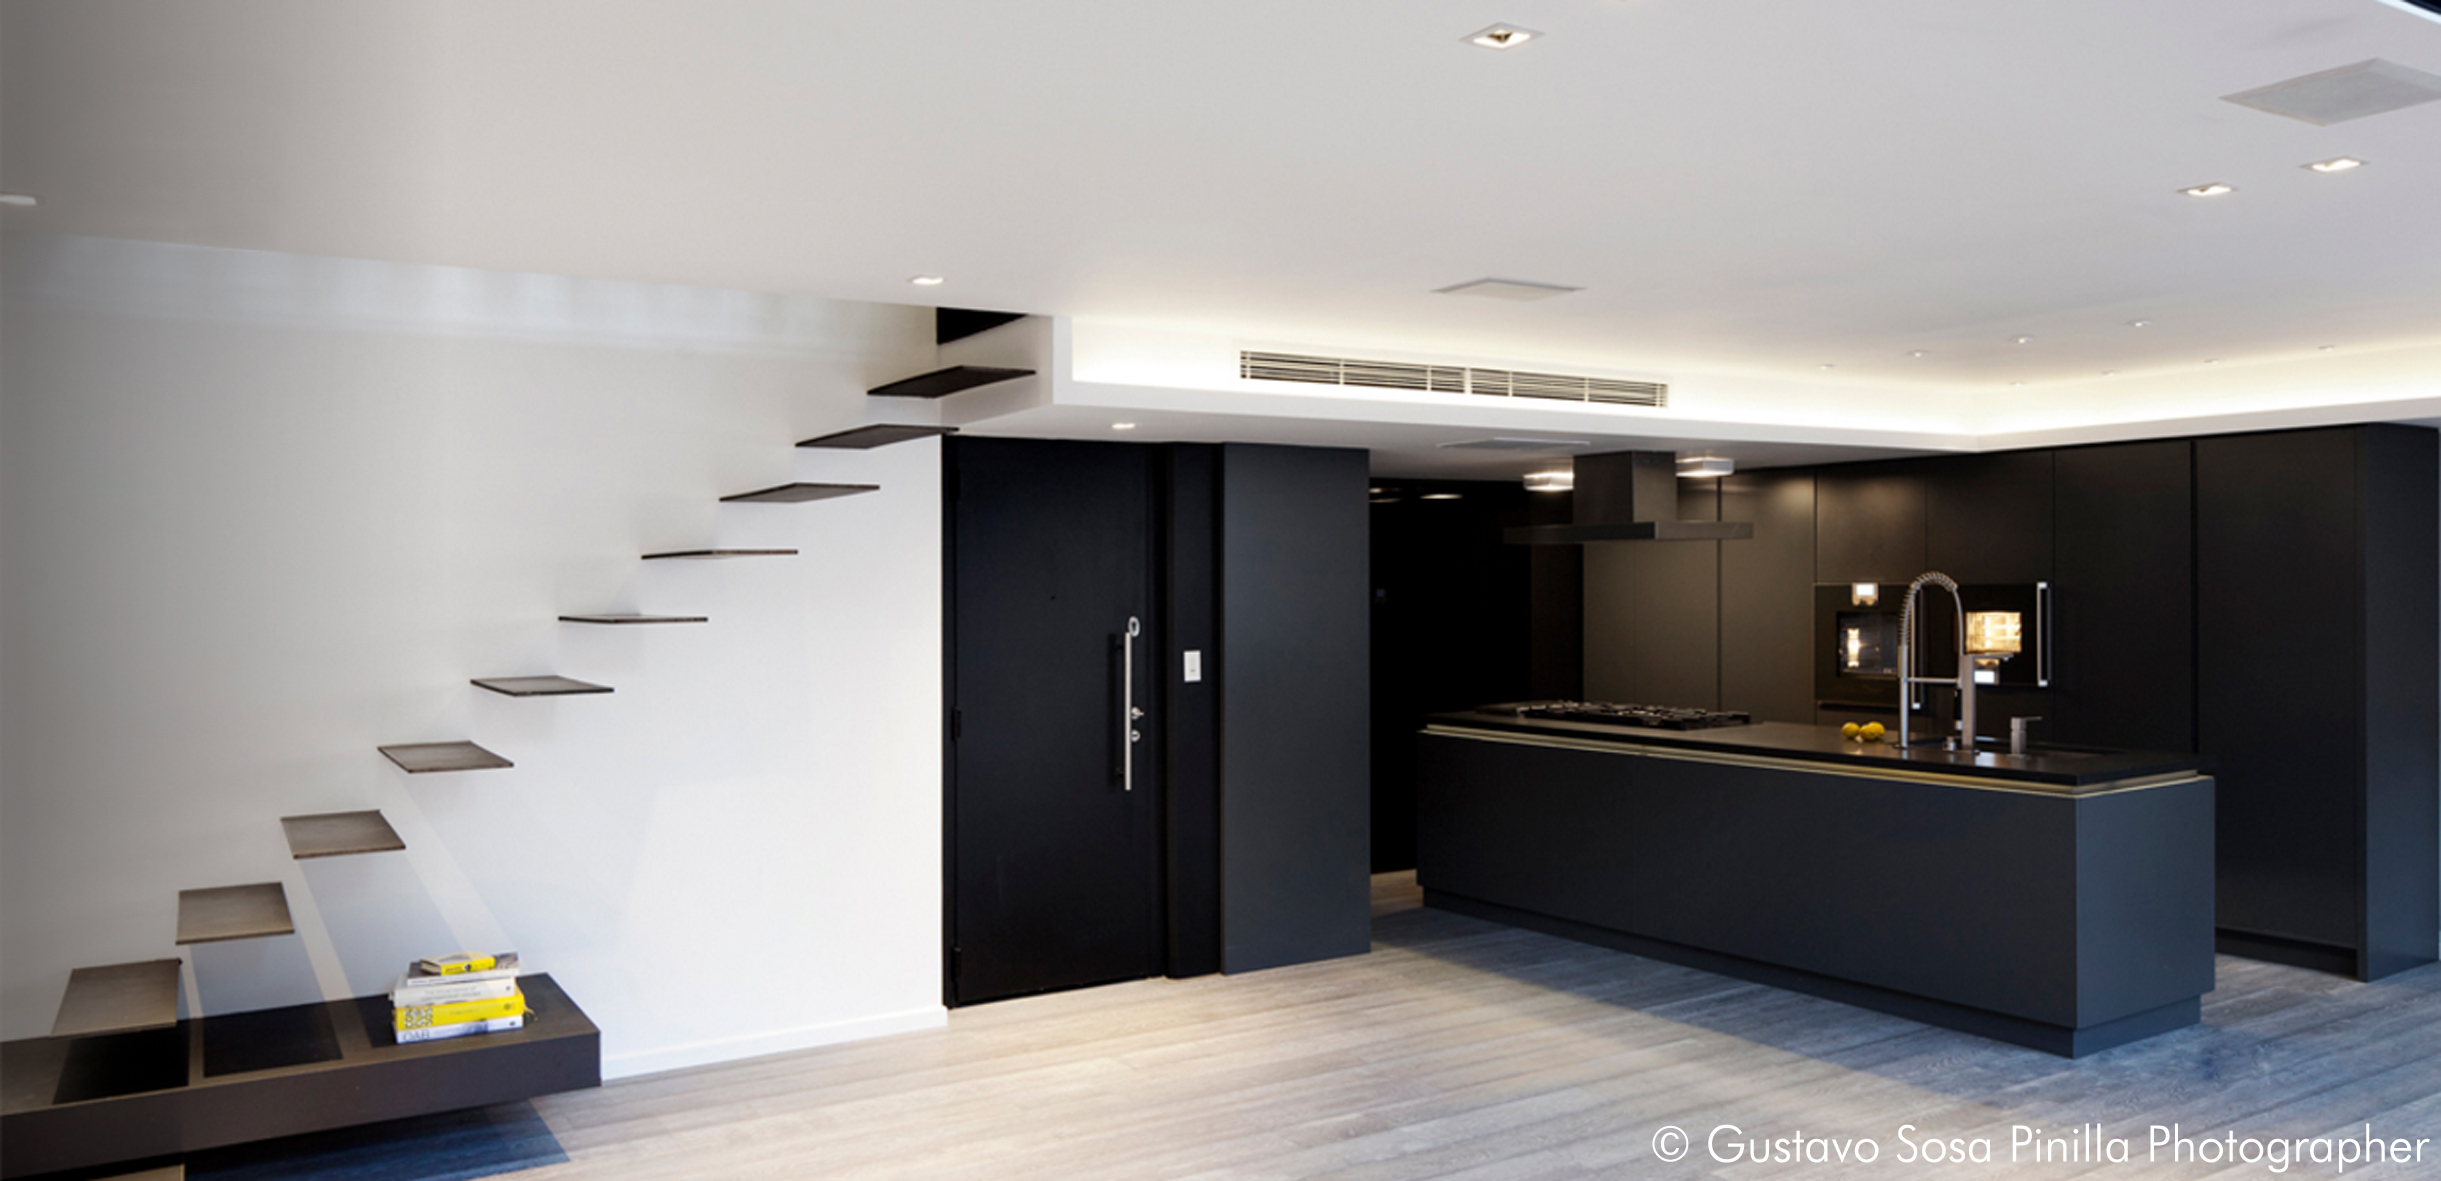 Metal Staircase - Living room - Kitchen Area - Gascon Remy Architect